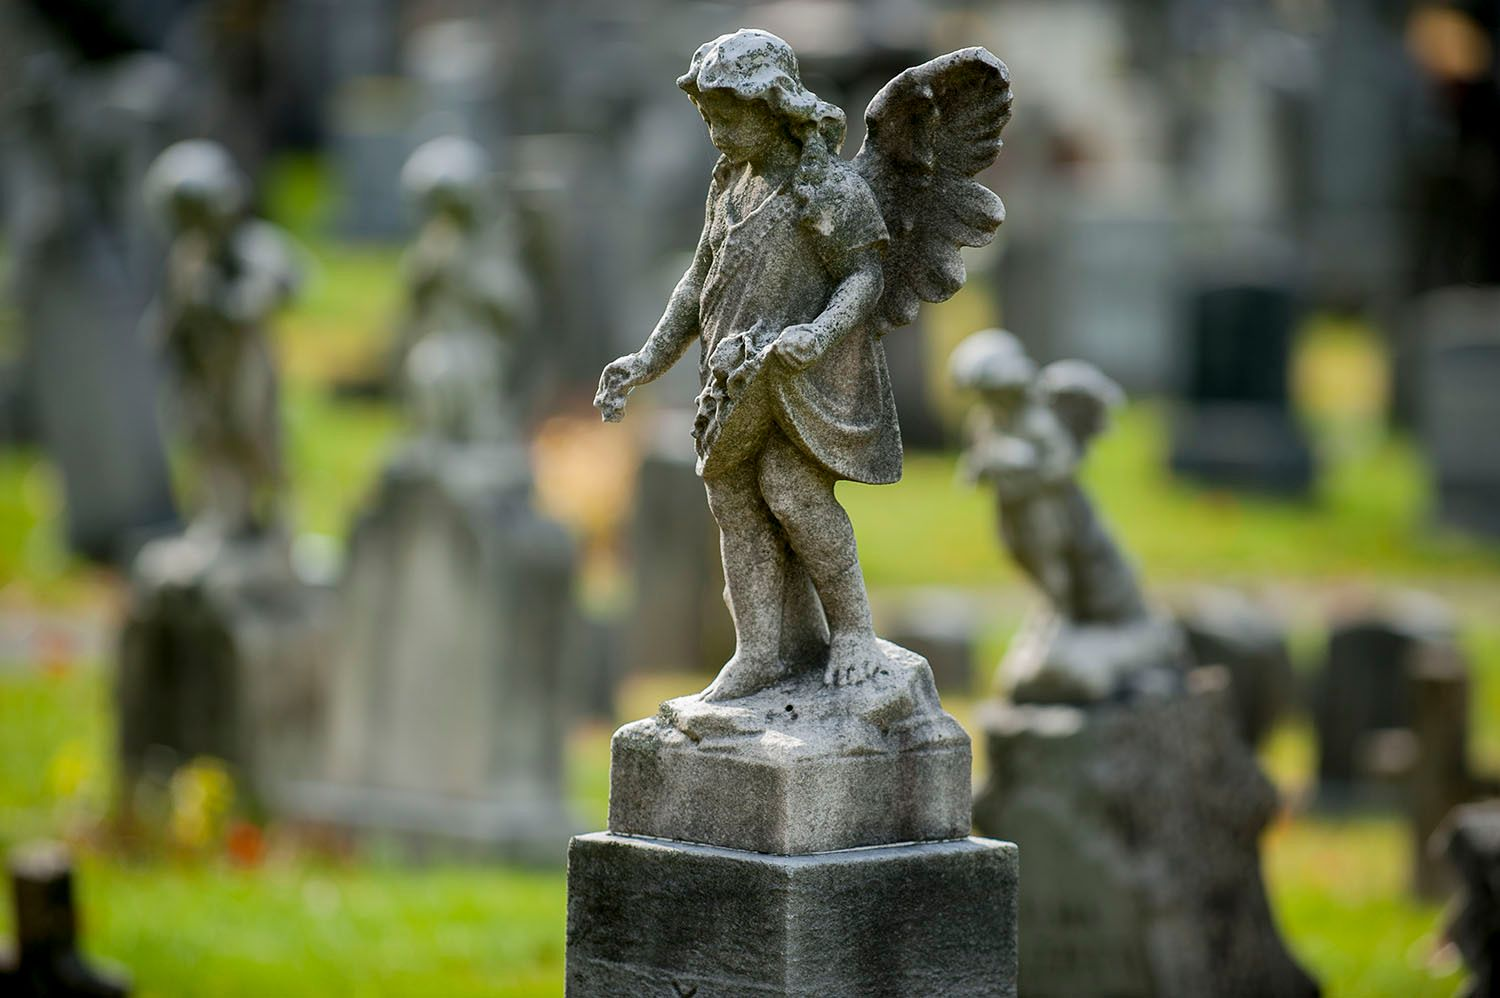 Statues of Children with Wings